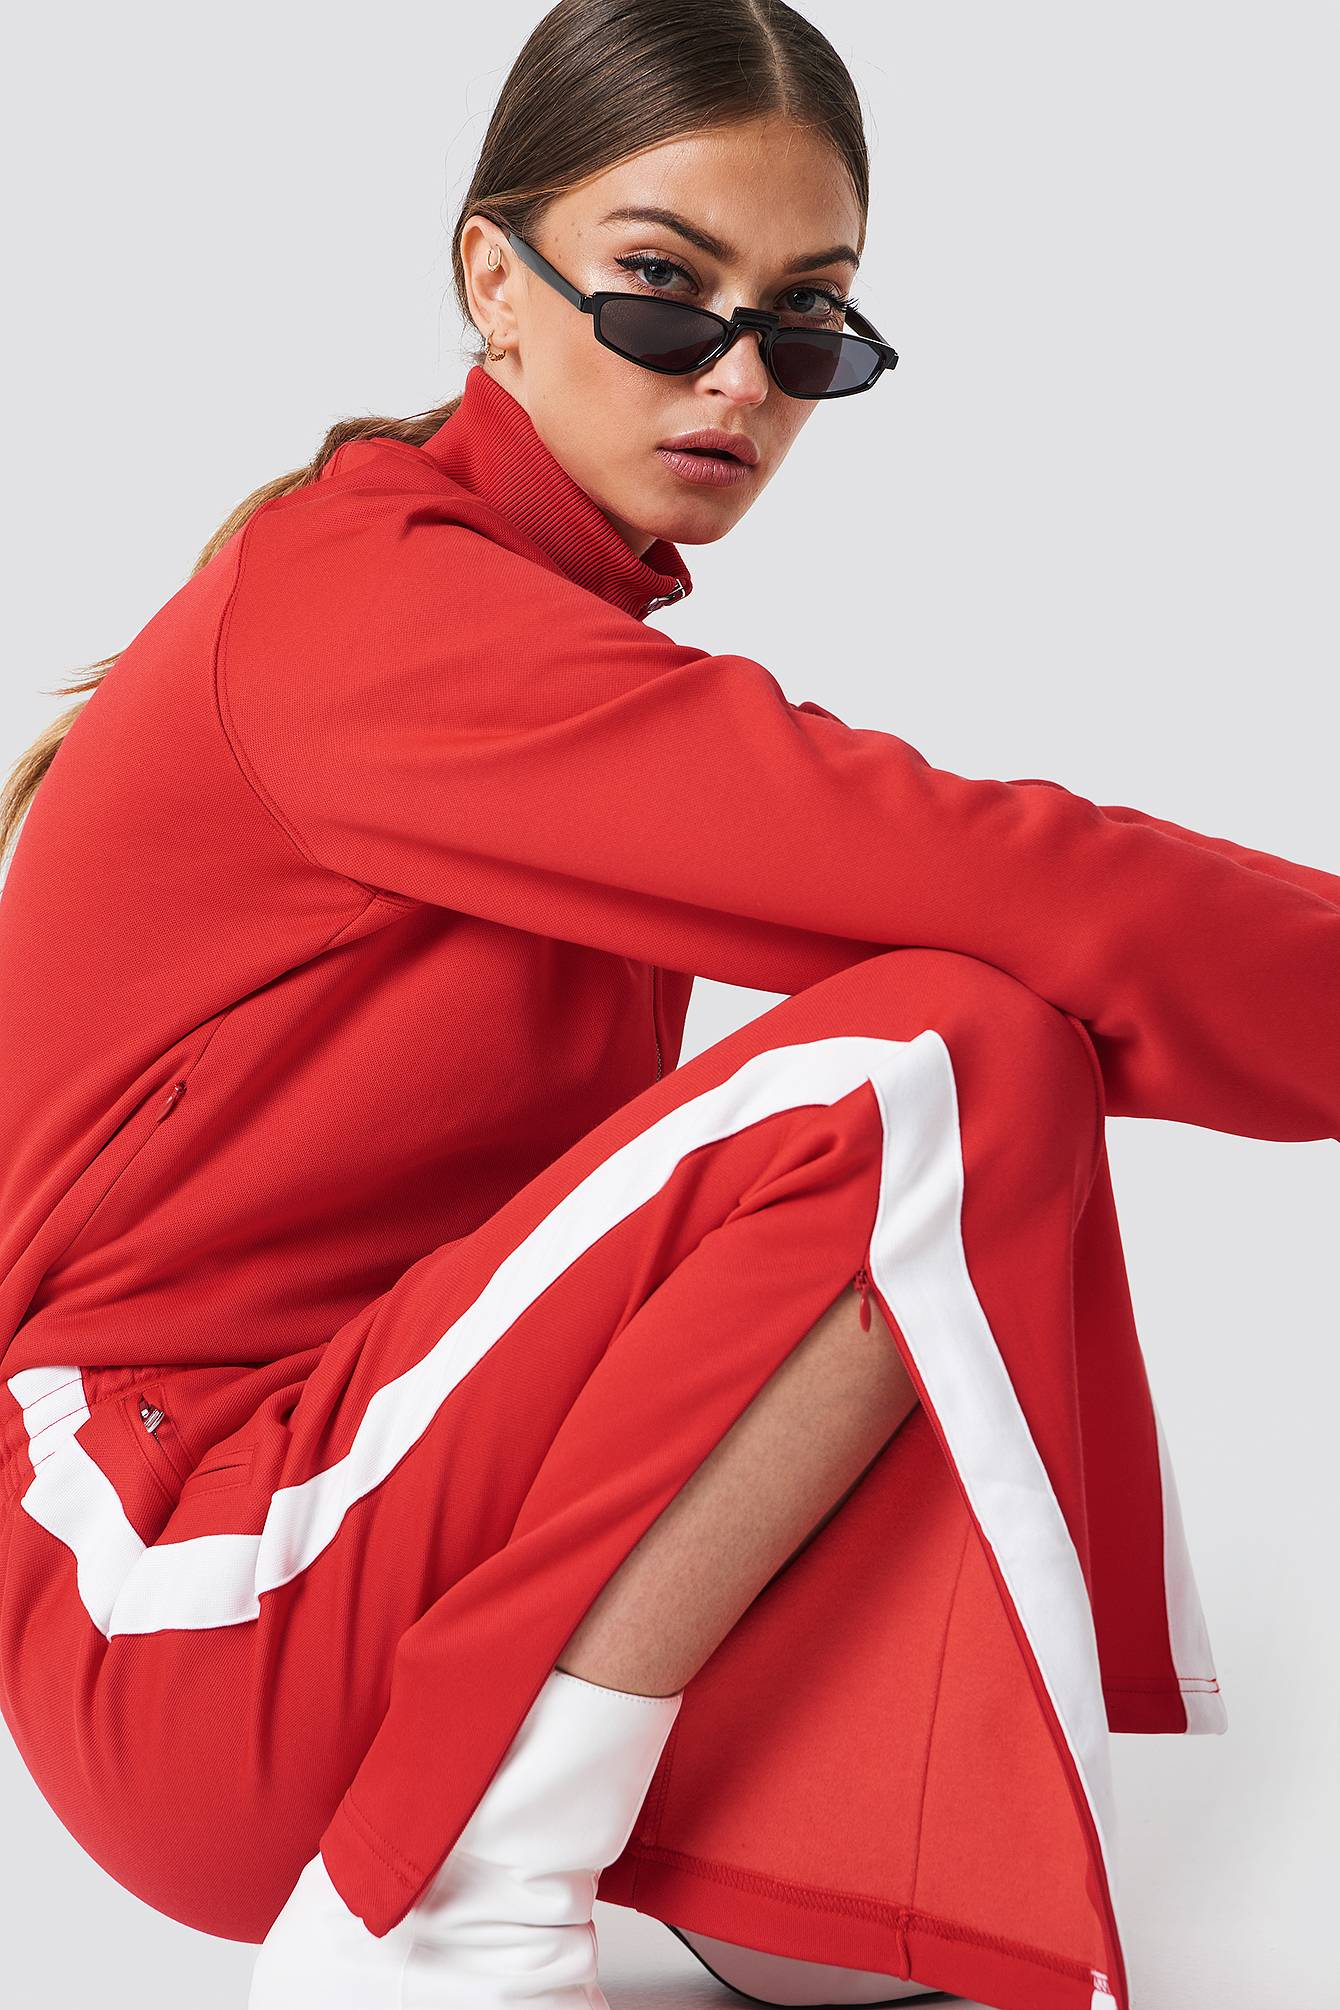 Calvin Klein Taped Knit Straight Fit Track Pant - Red